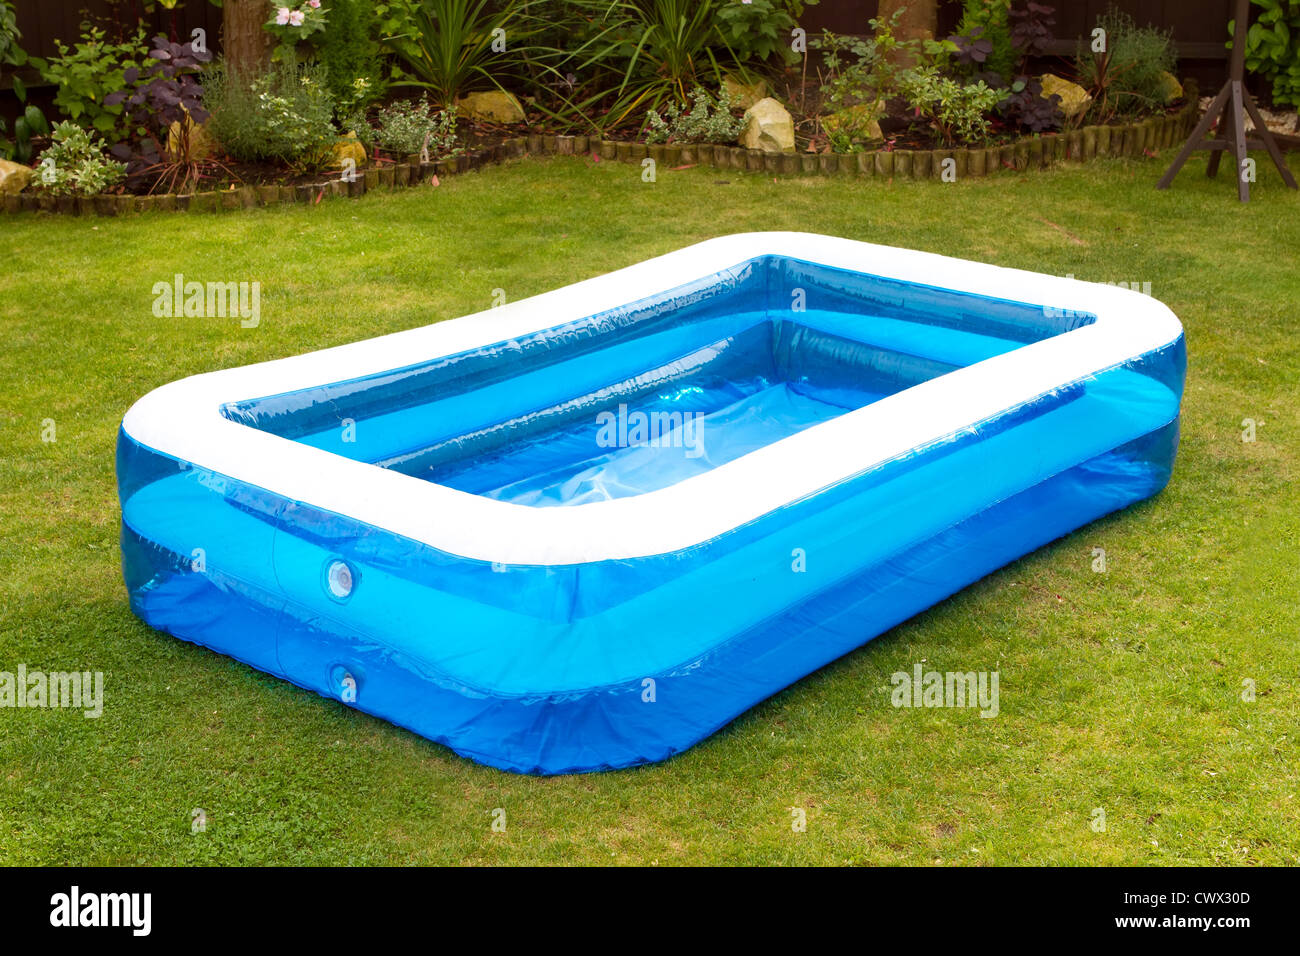 Pool Garten Freiburg Paddling Pool Grass Stock Photos Paddling Pool Grass Stock